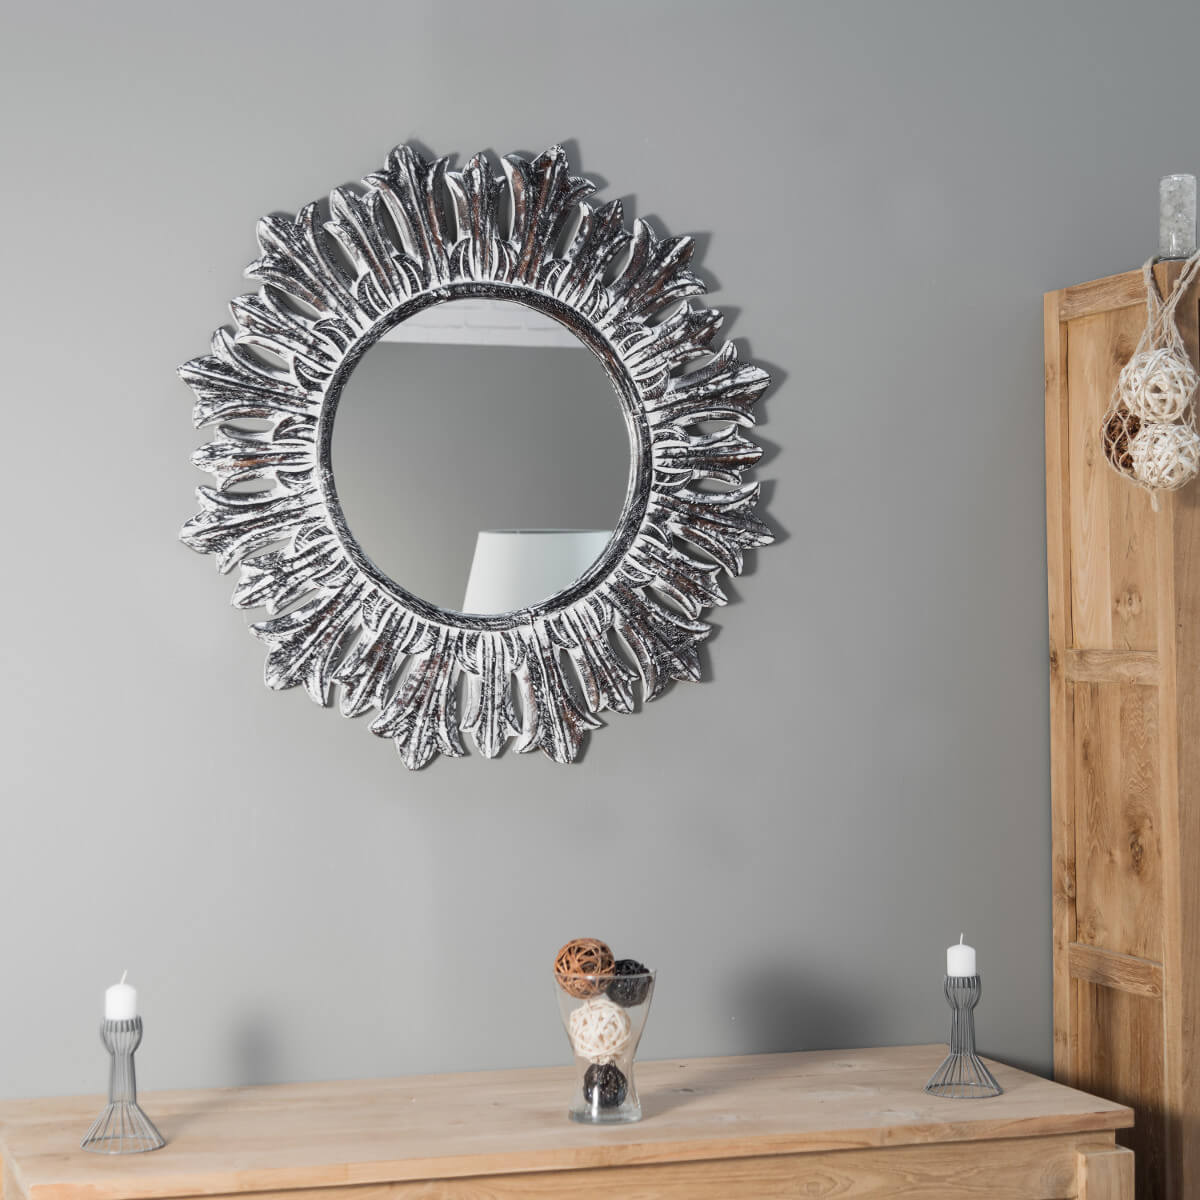 Wanda collection 468 for Miroir en bois brut